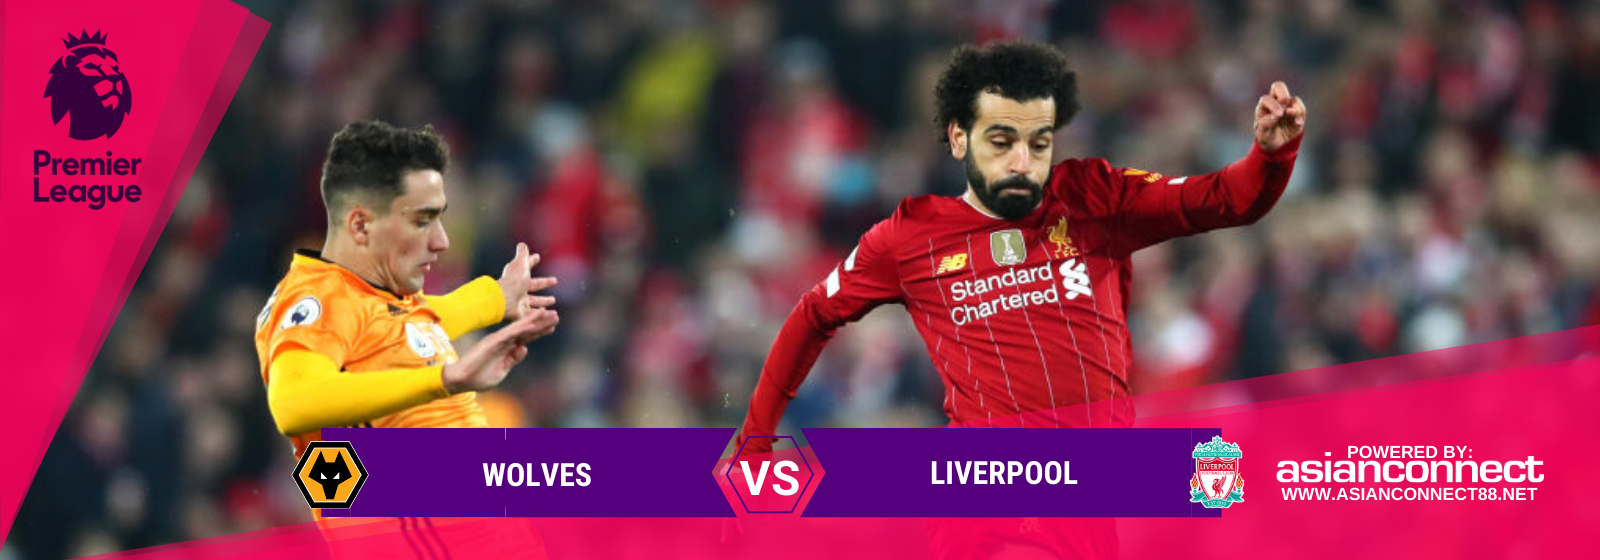 Asianconnect: Wolves vs Liverpool Odds for January 23, 2020